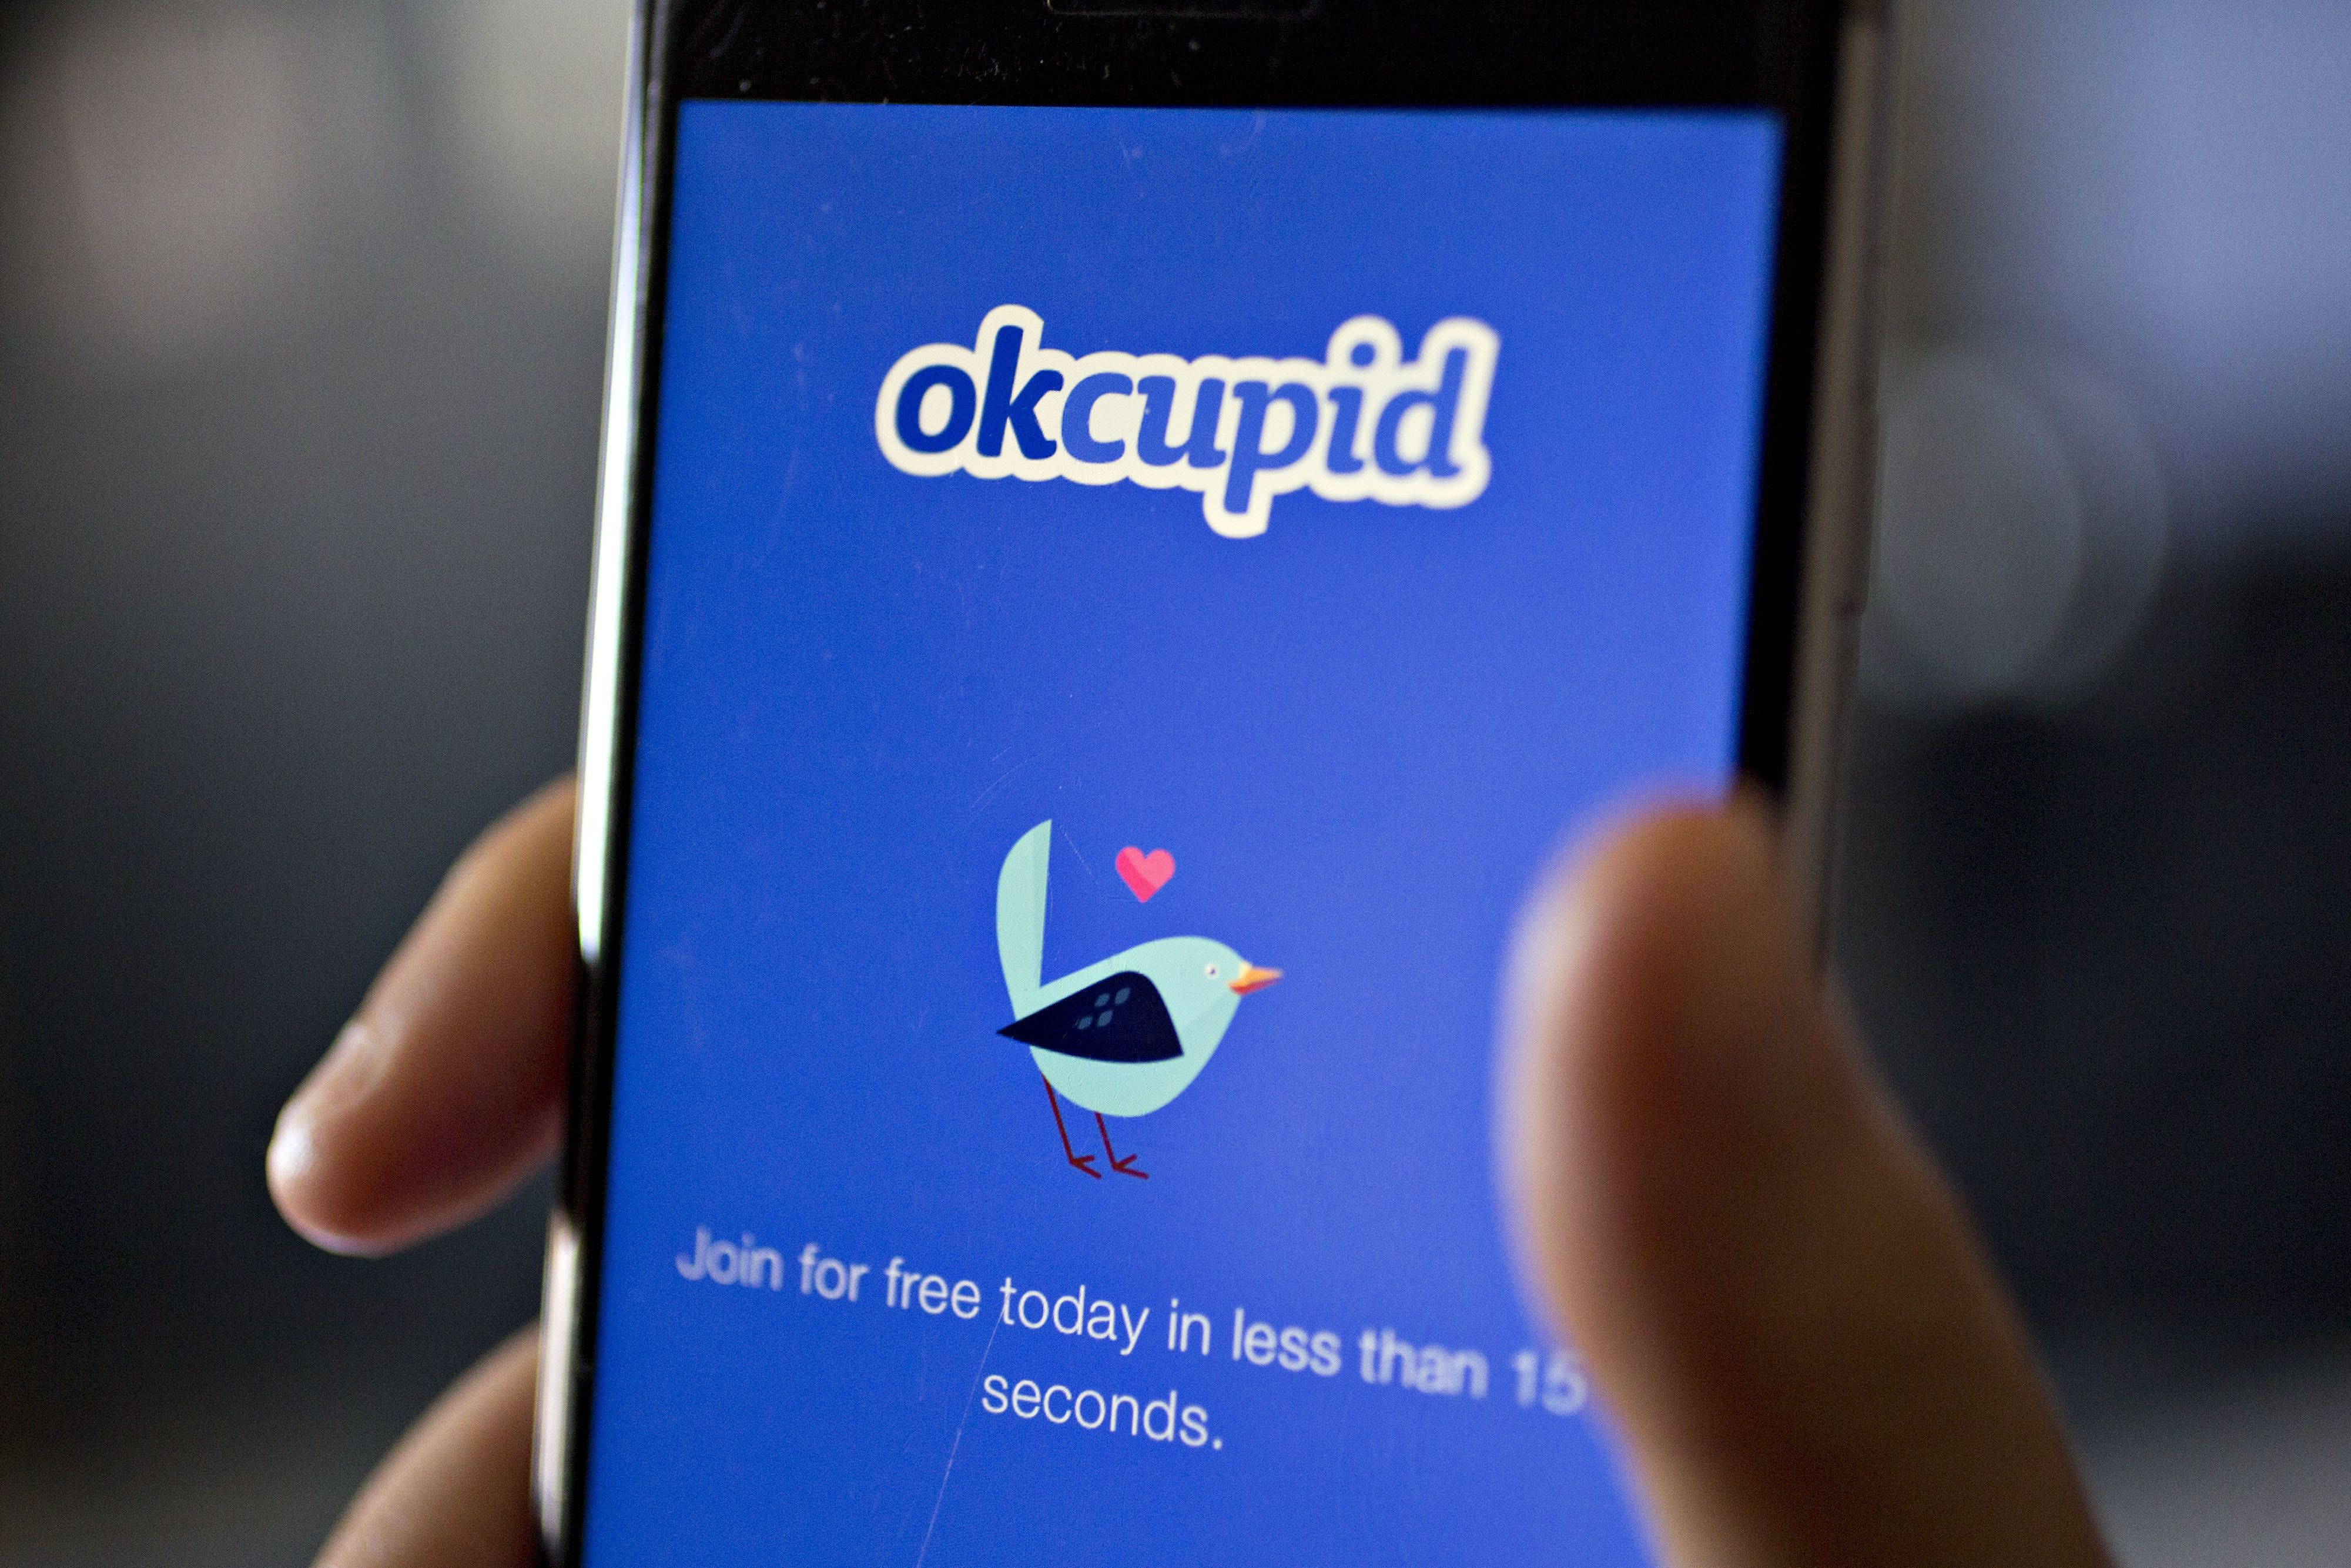 The OkCupid application is demonstrated for a photograph on an Apple Inc. iPhone in Washington, D.C., U.S., on Saturday, Feb. 4, 2017. IAC/InterActiveCorp, parent of Match Group Inc. which operates a number of dating services including OkCupid, beat analysts estimates for revenue and profit in the fourth quarter when figured were released on January 31. Photographer: Andrew Harrer/Bloomberg via Getty Images